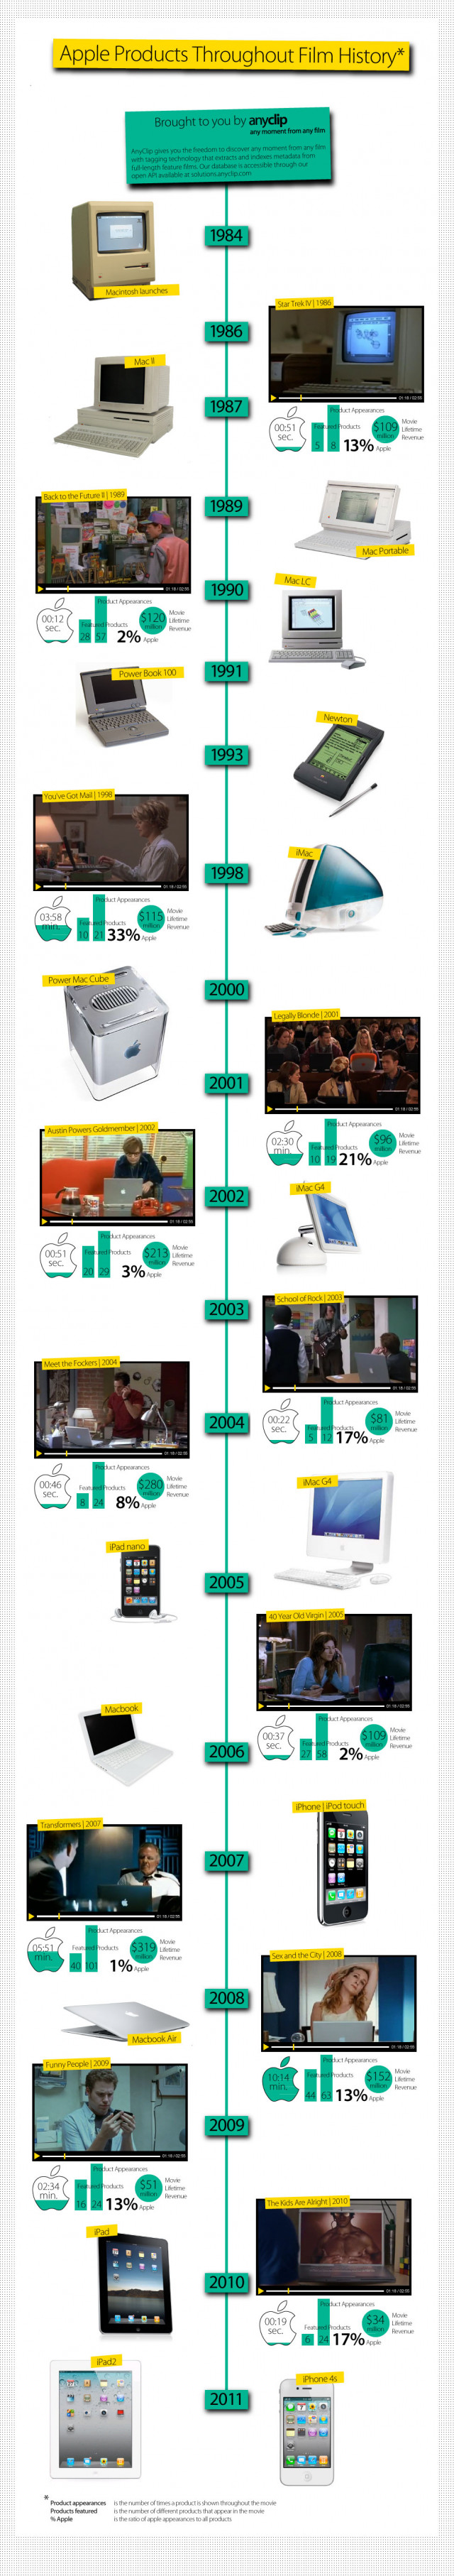 The History of Apple Products in Film (Infographic)